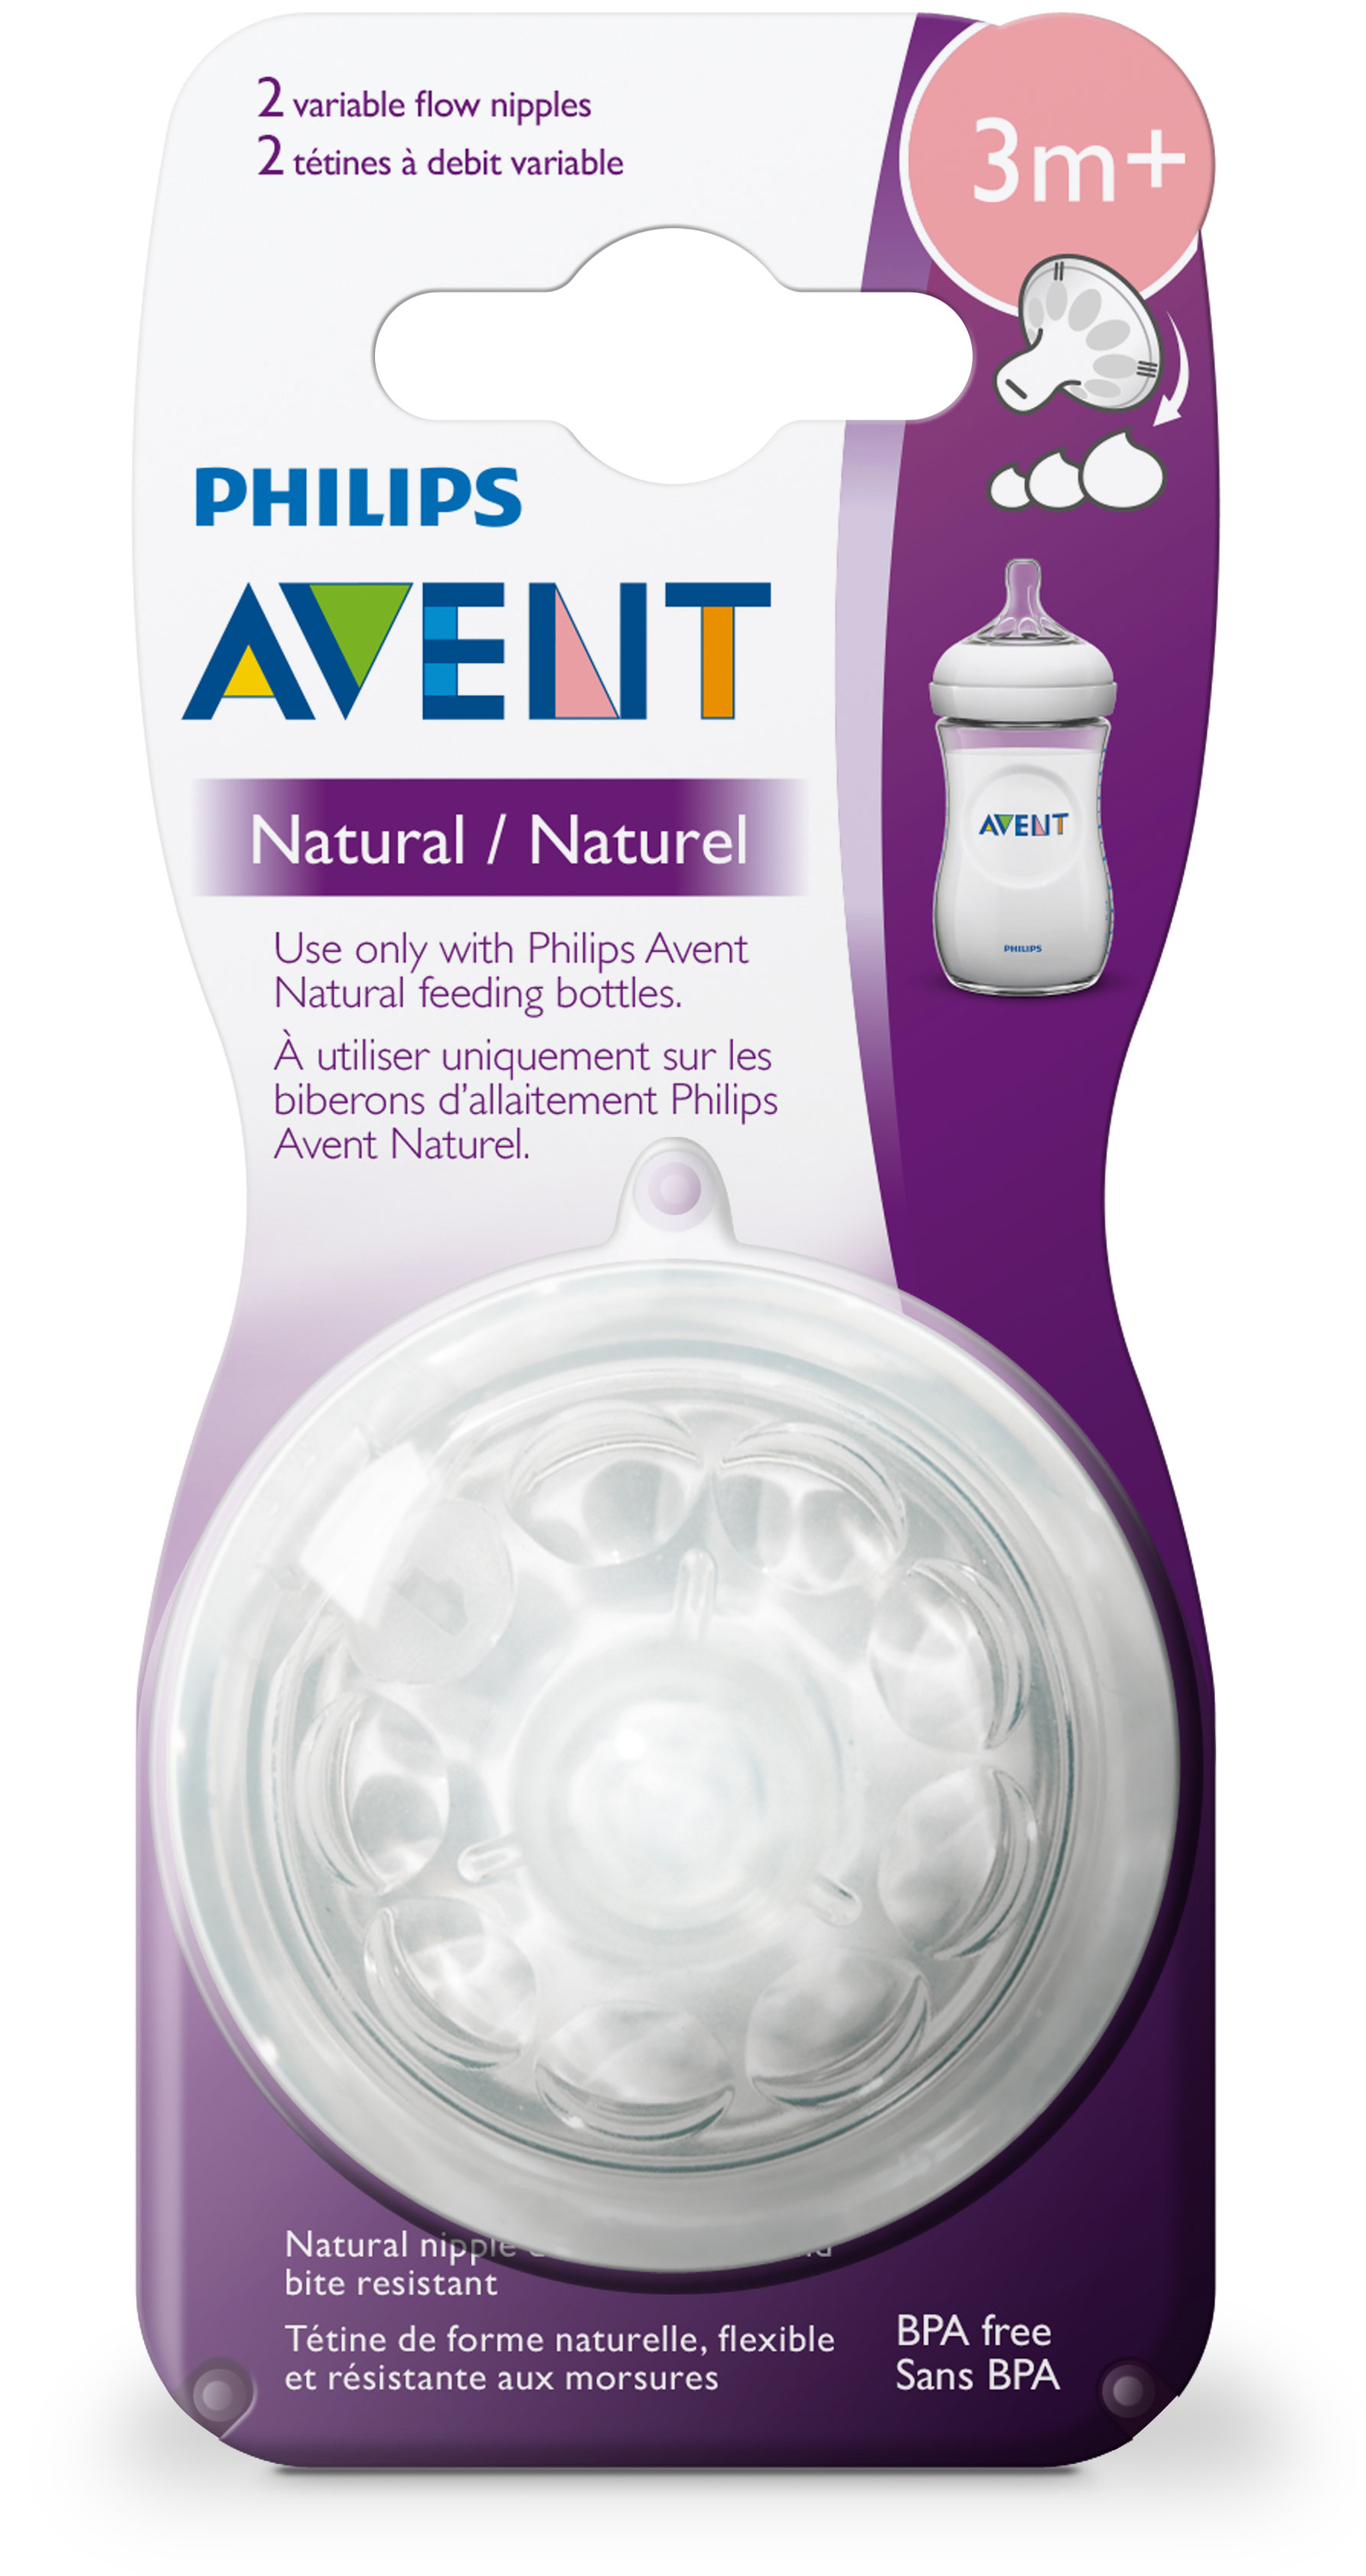 2-Count Philips Avent T/étine D/ébit Variable naturel